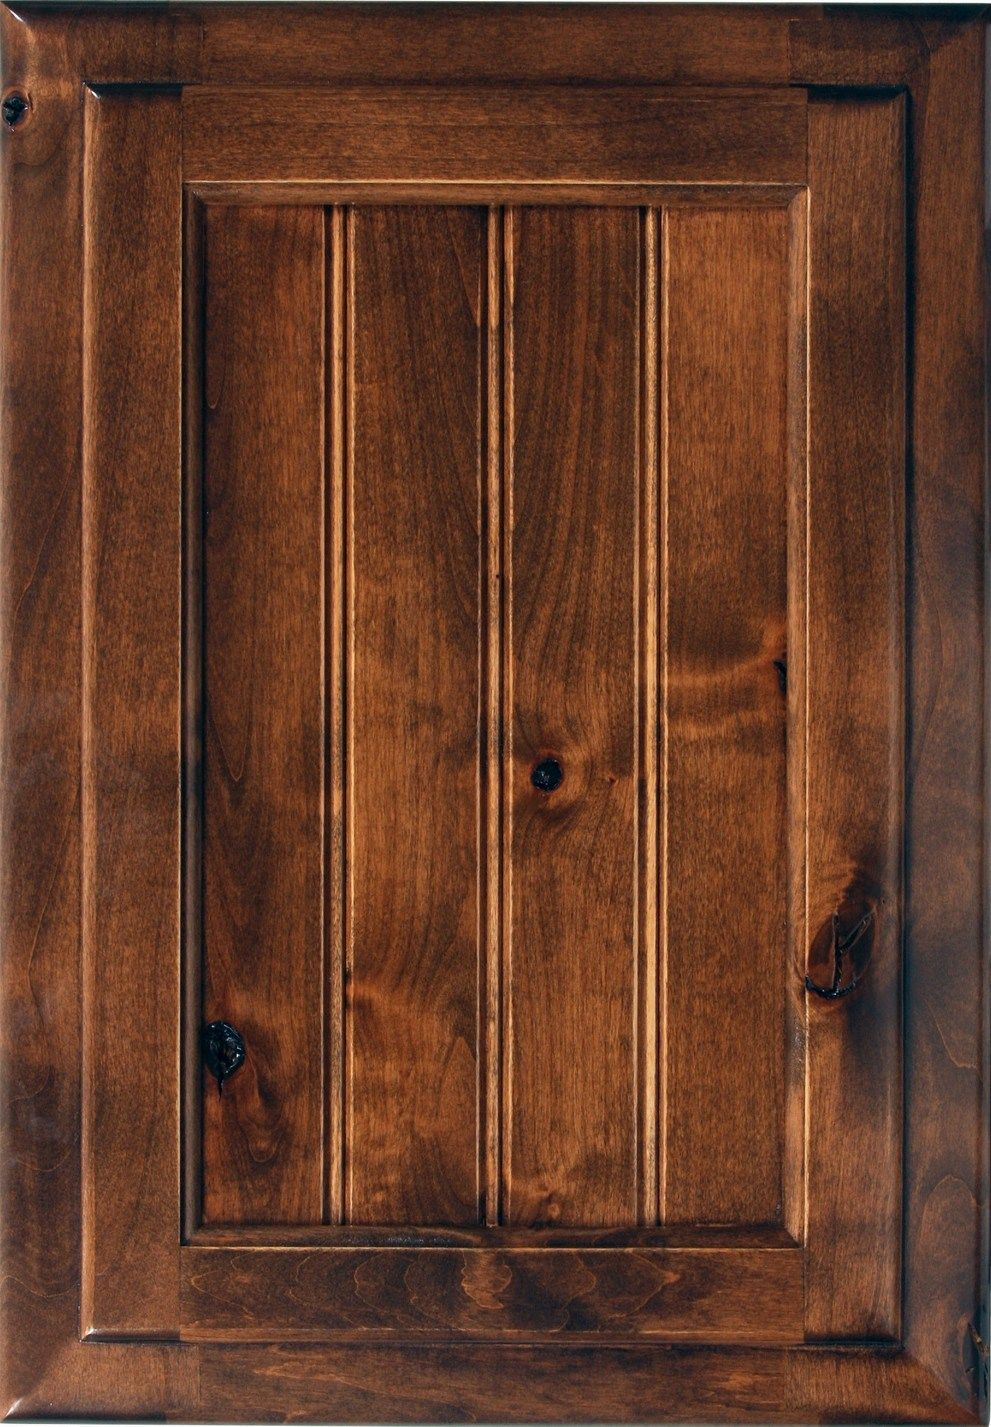 Design-Craft Cabinetry: Wood Finishes | Knotty alder, Appaloosa ...